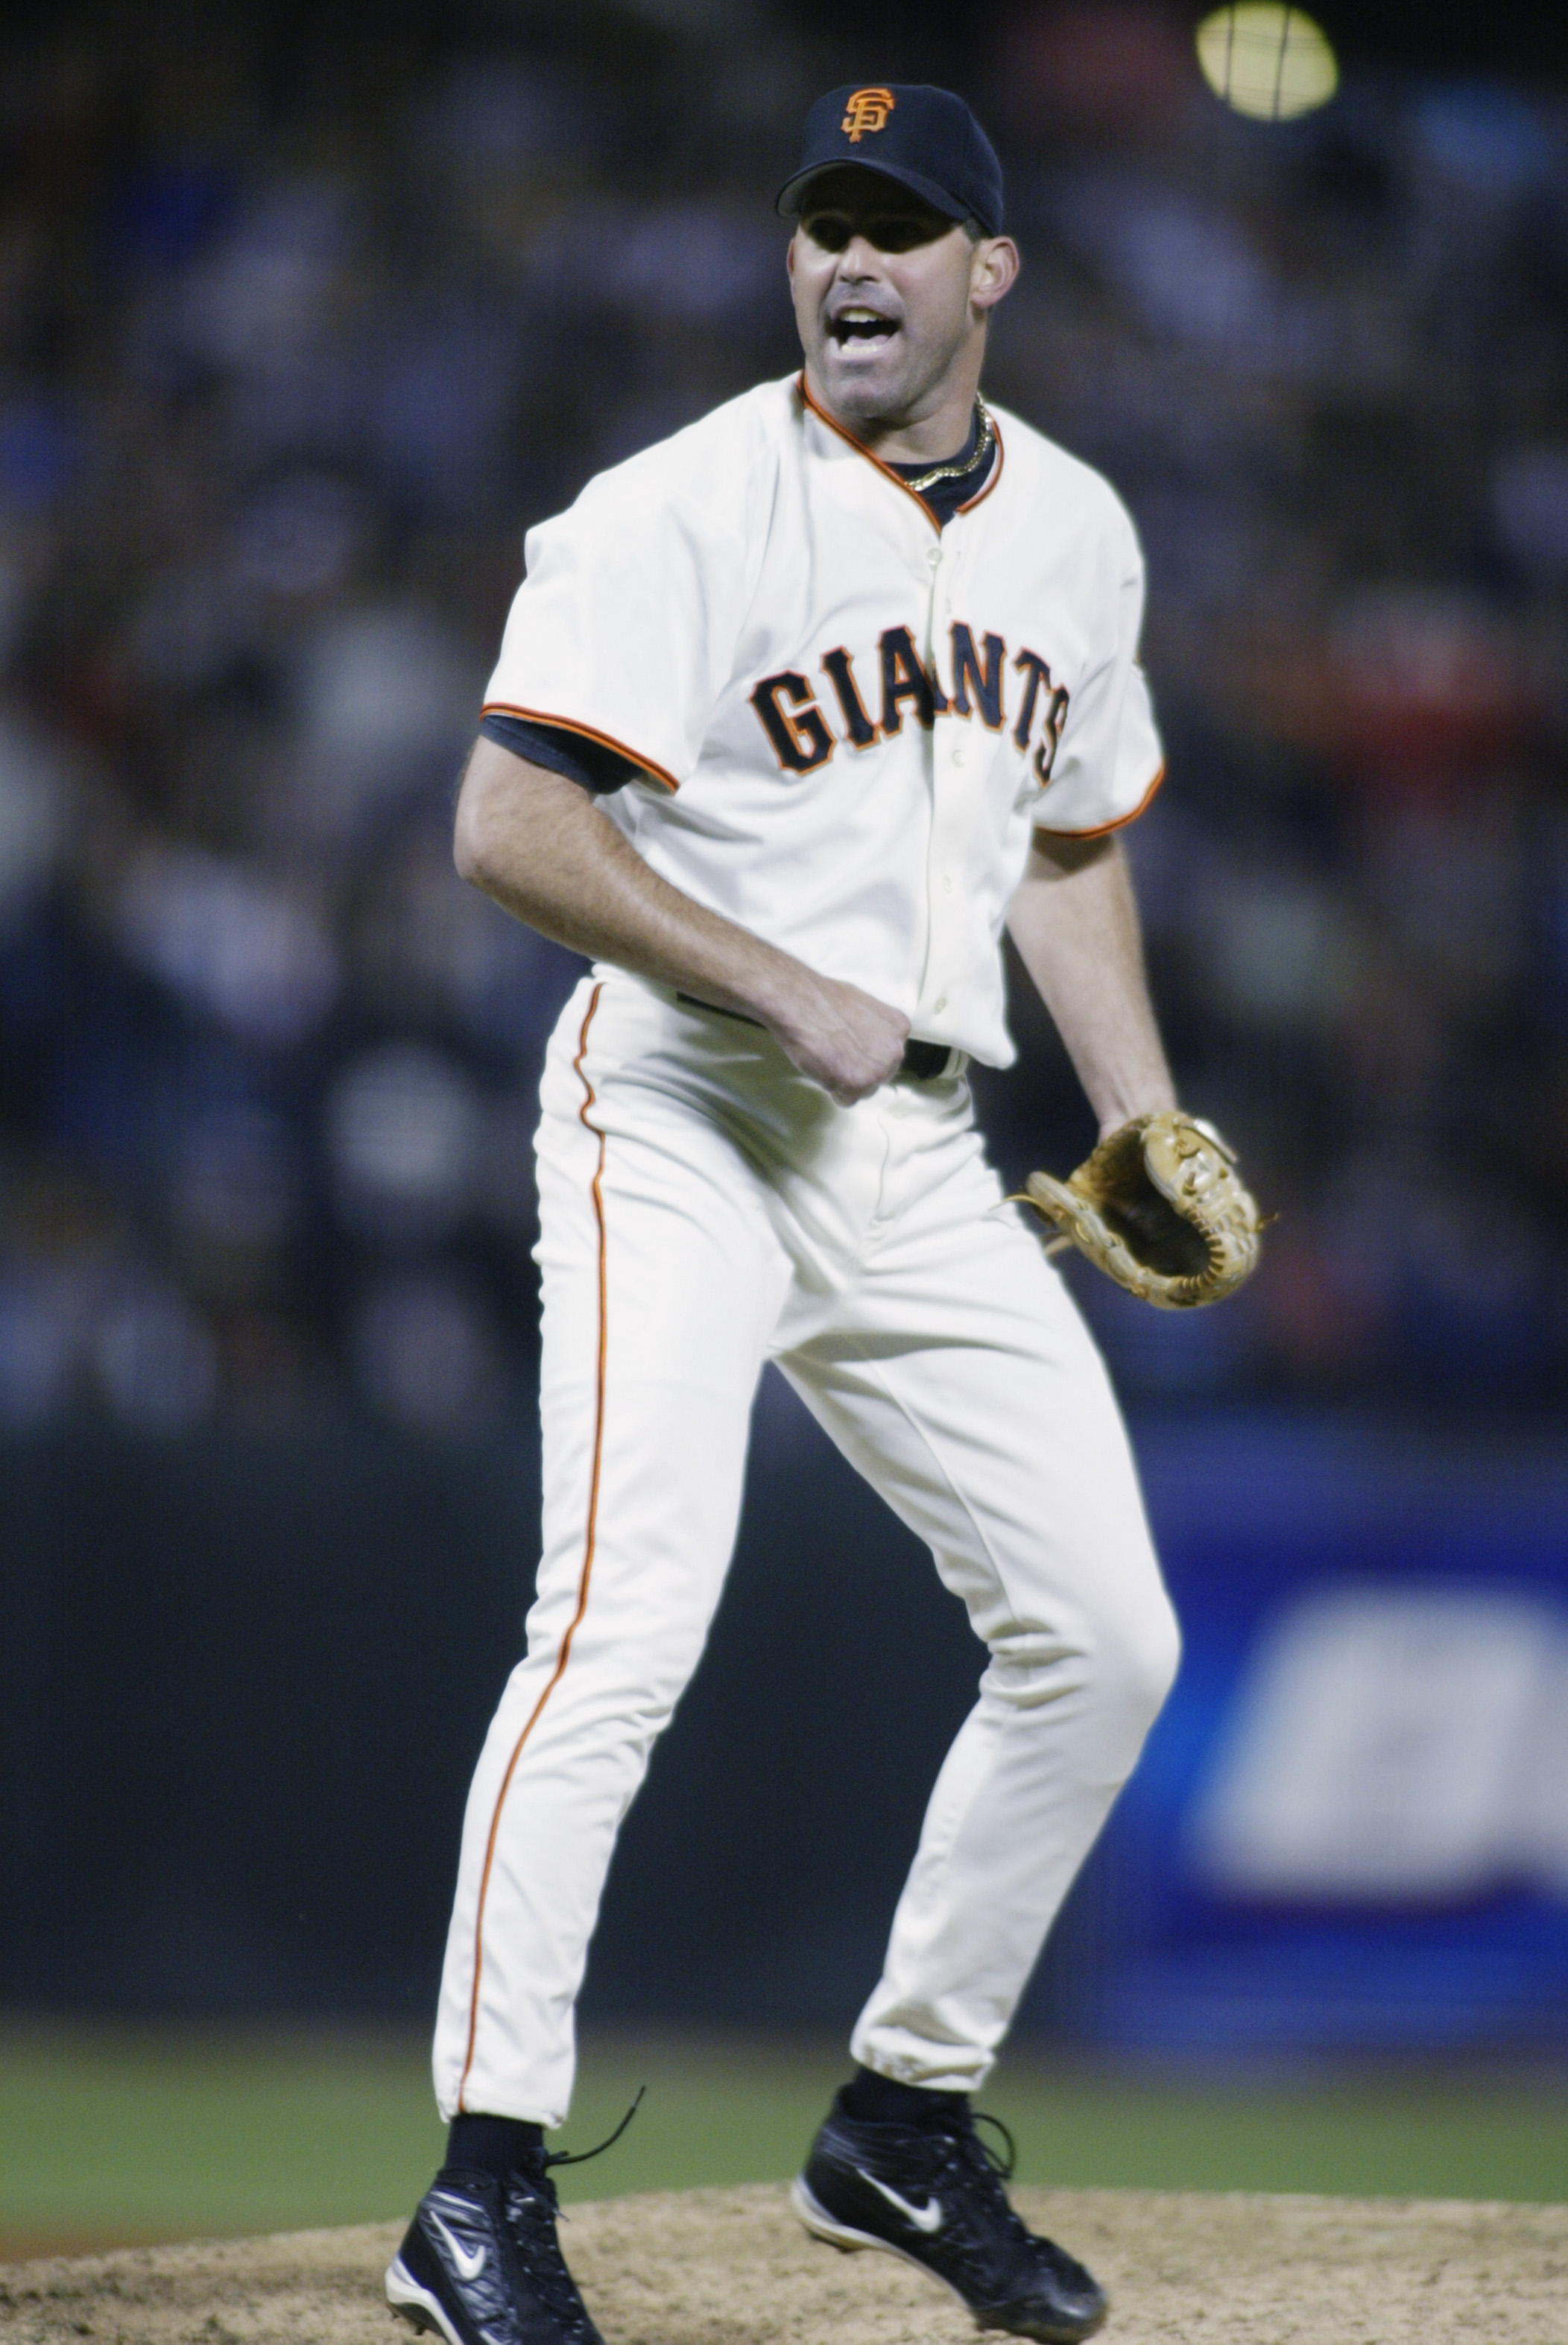 SAN FRANCISCO - SEPTEMBER 27:  Closing pitcher Rob Nen #31 of the San Francisco Giants celebrates after beating the Houston Astros in the game on September 27, 2002 at Pac Bell Park in San Francisco, California.  The Giants defeated the Astros 2-1.  (Phot